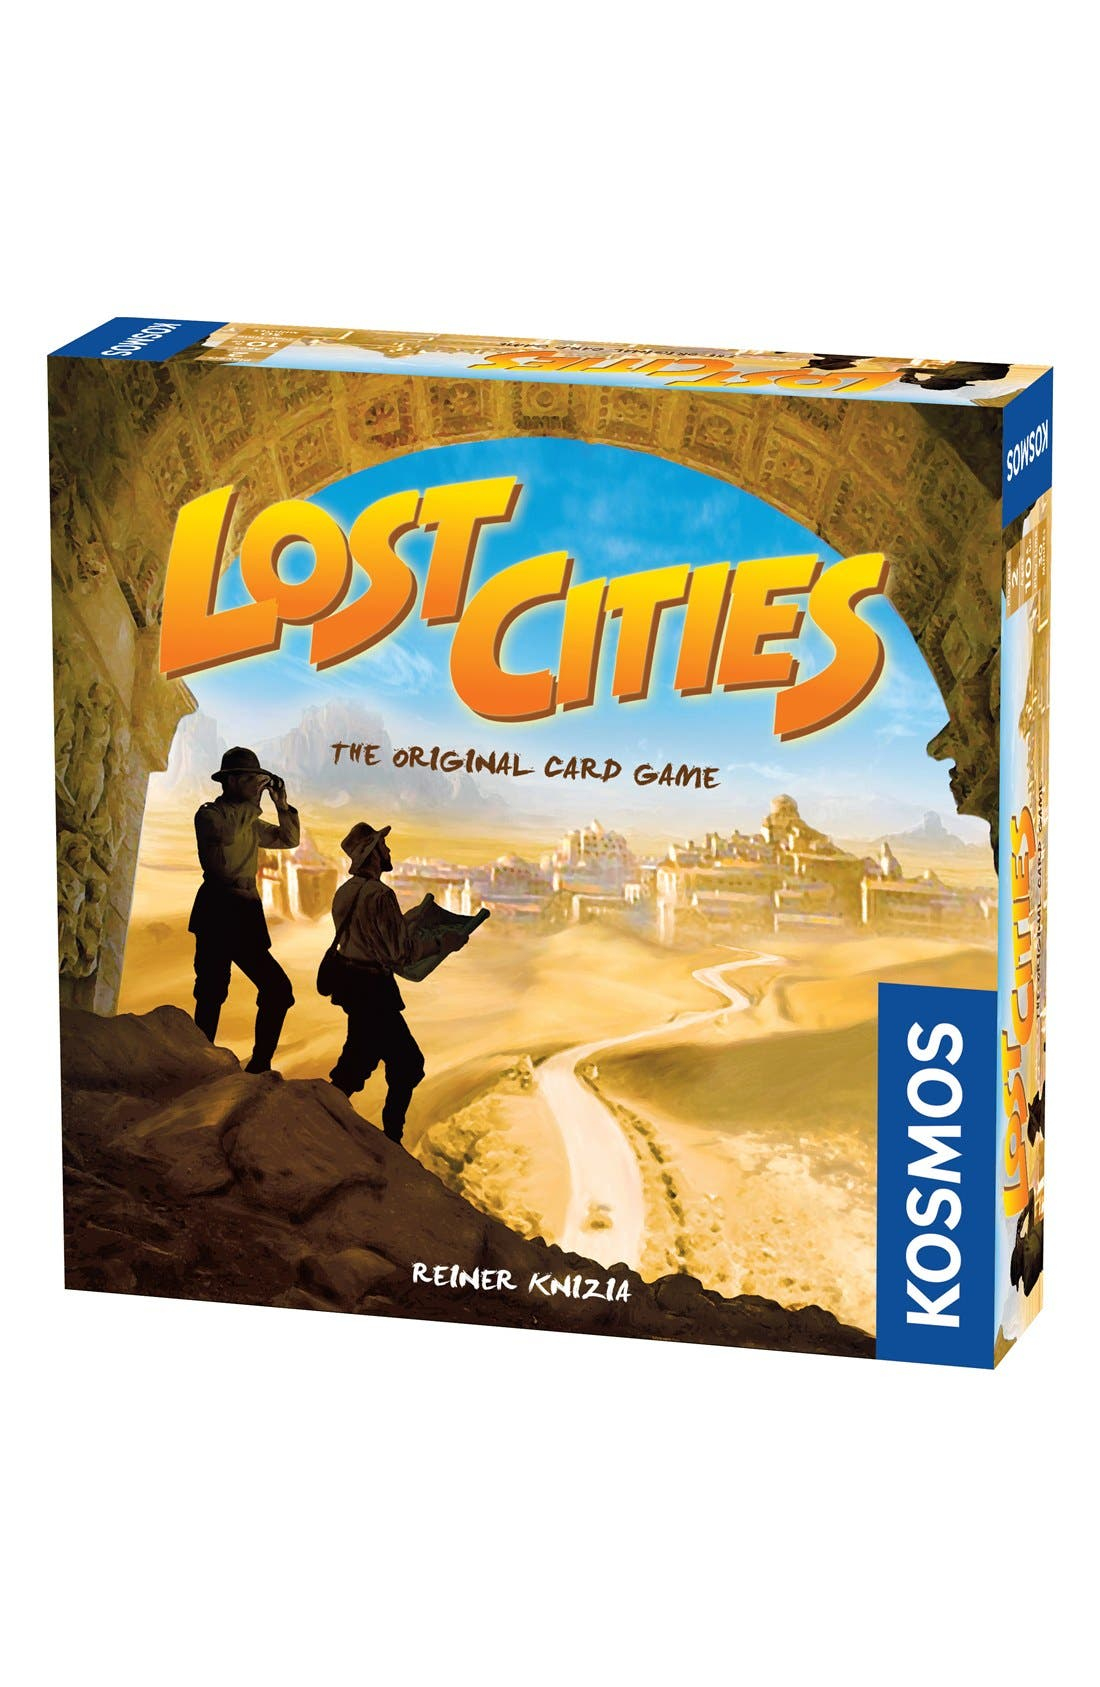 Thames & Kosmos 'Lost Cities' Card Game